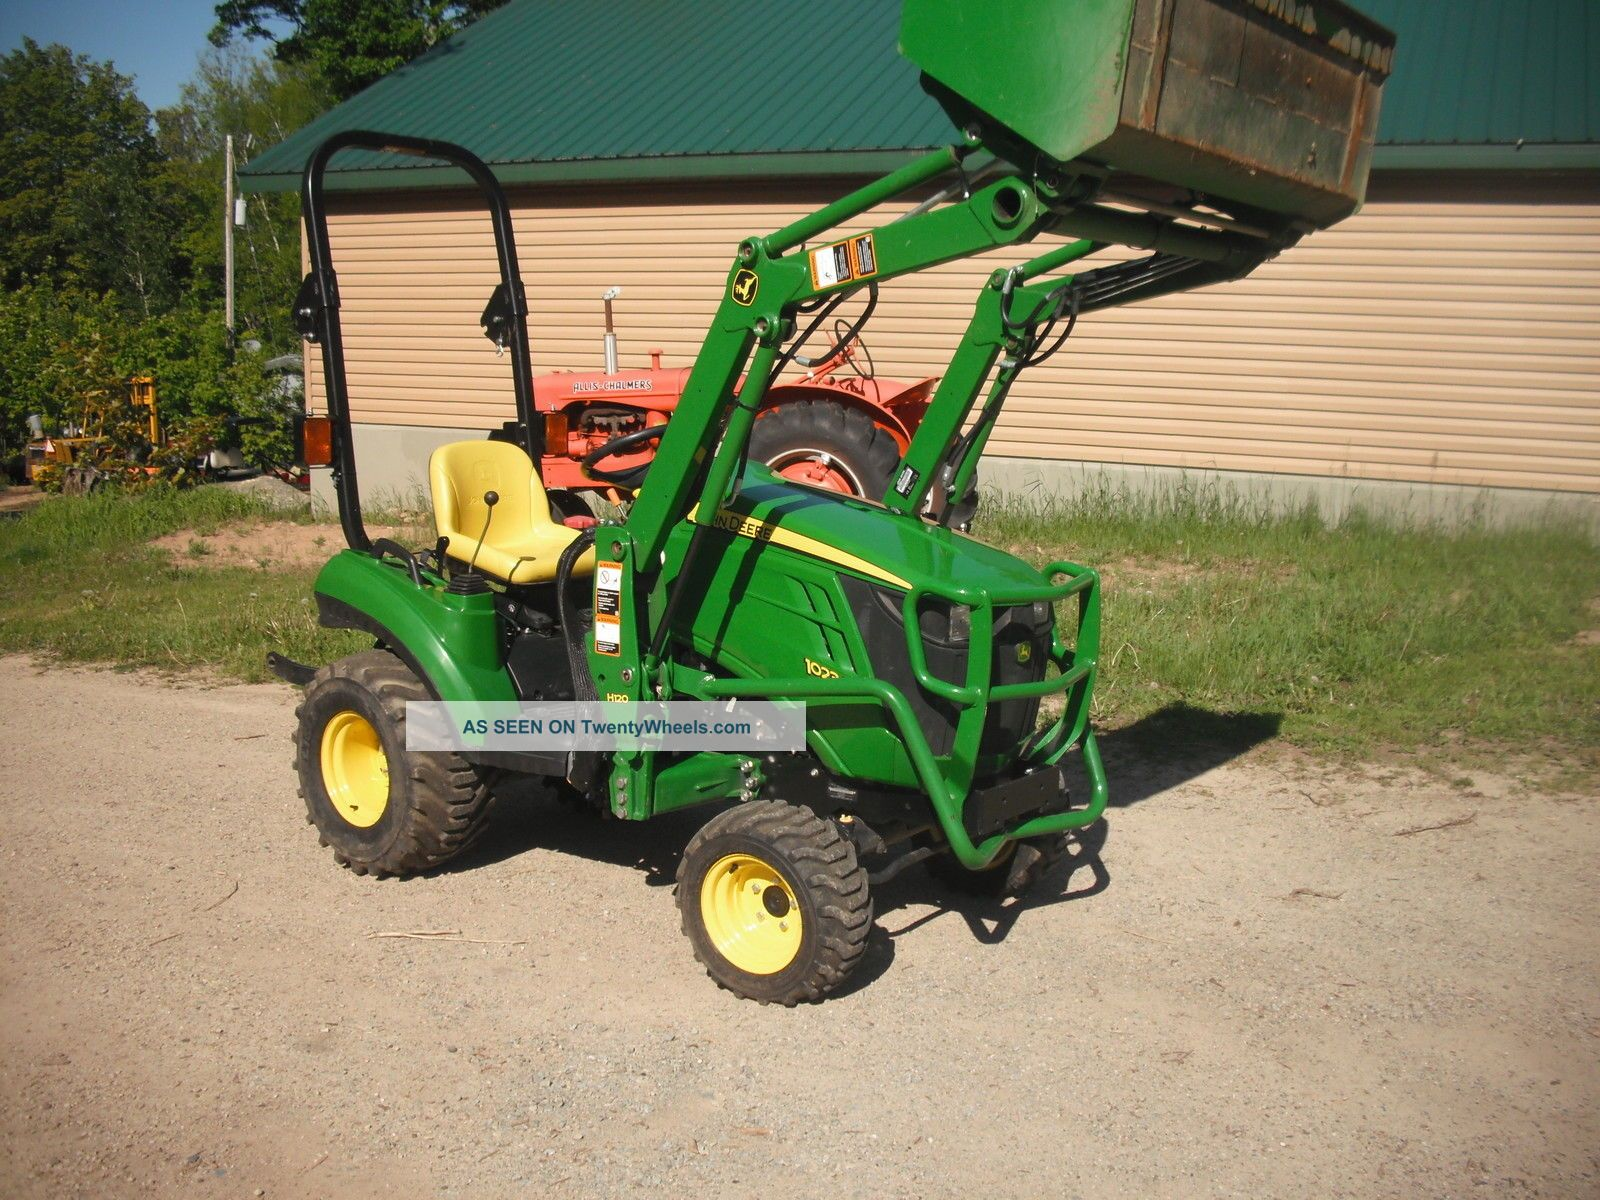 Small Tractors With Loaders : John deere e loader compact tractor